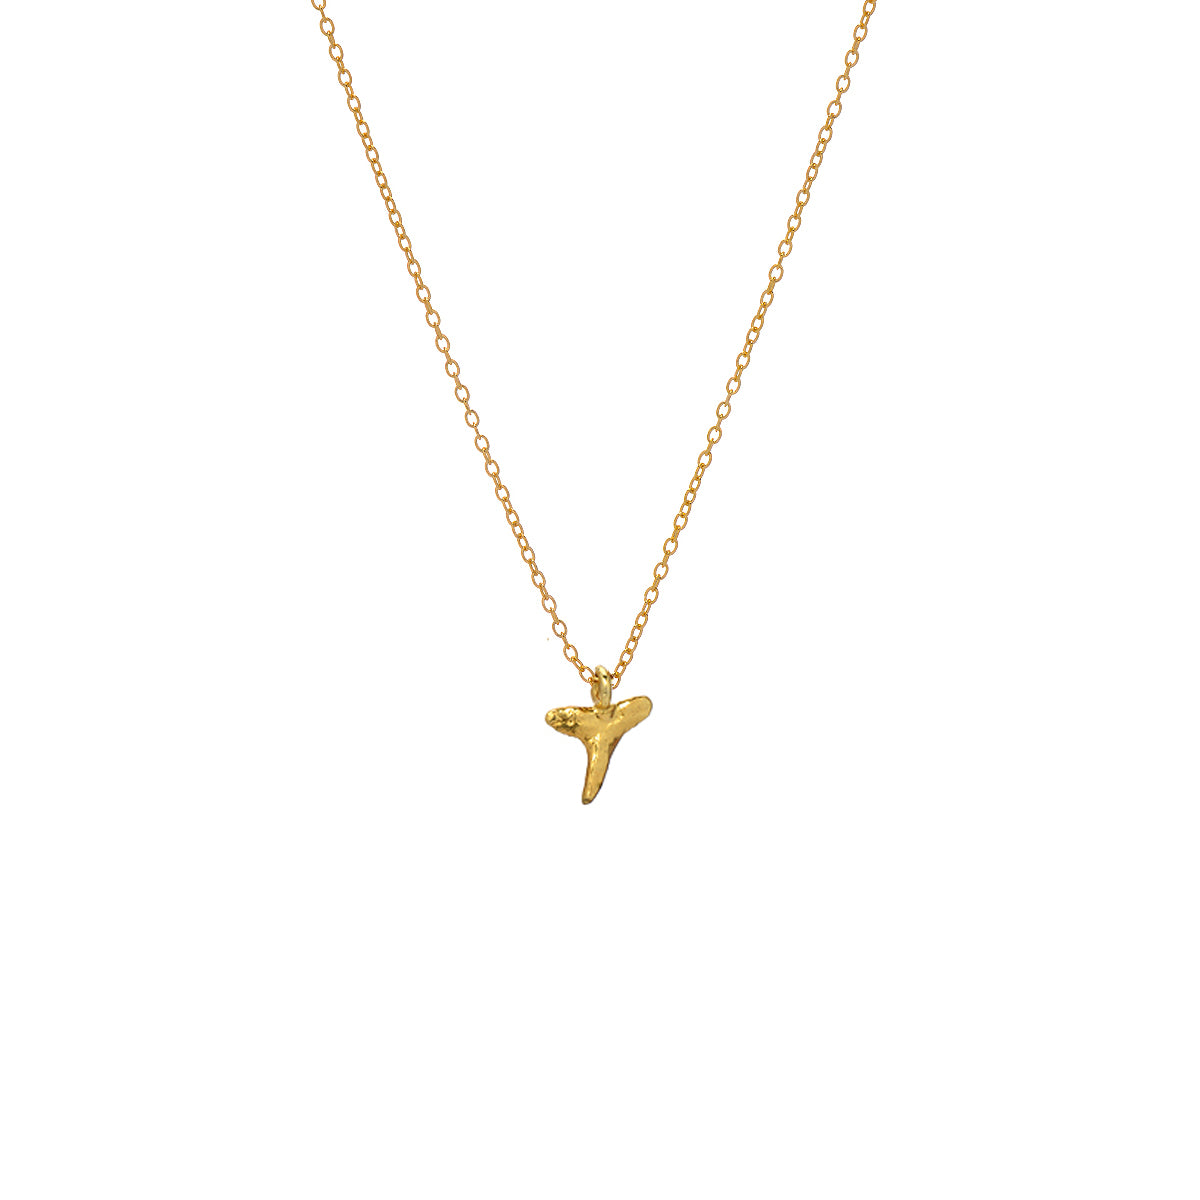 Reef Shark Necklace